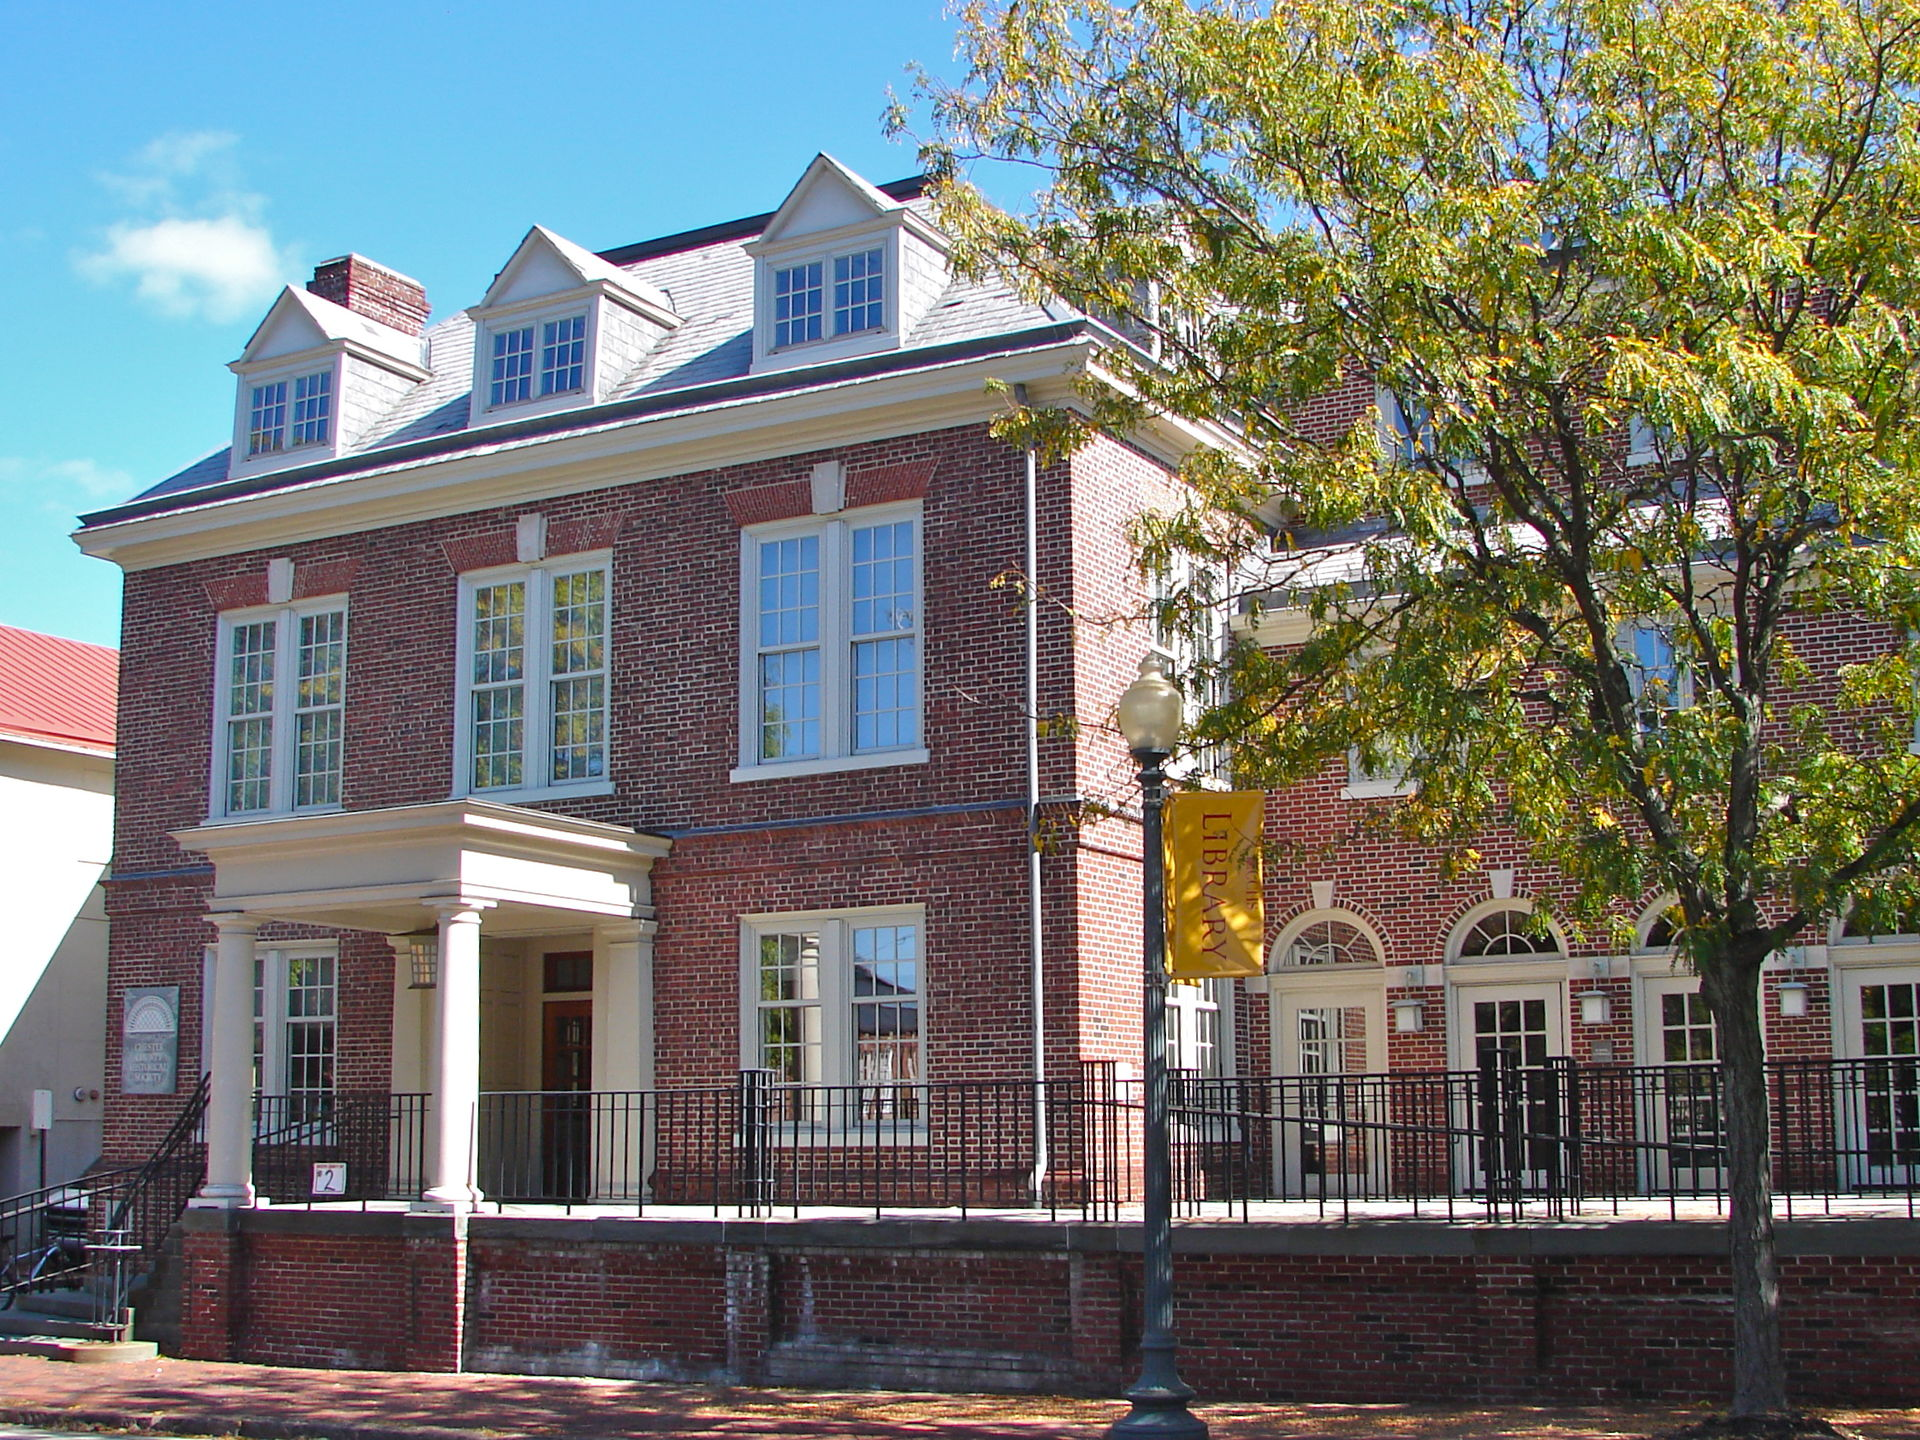 The Chester County Historical Society was established in 1908.